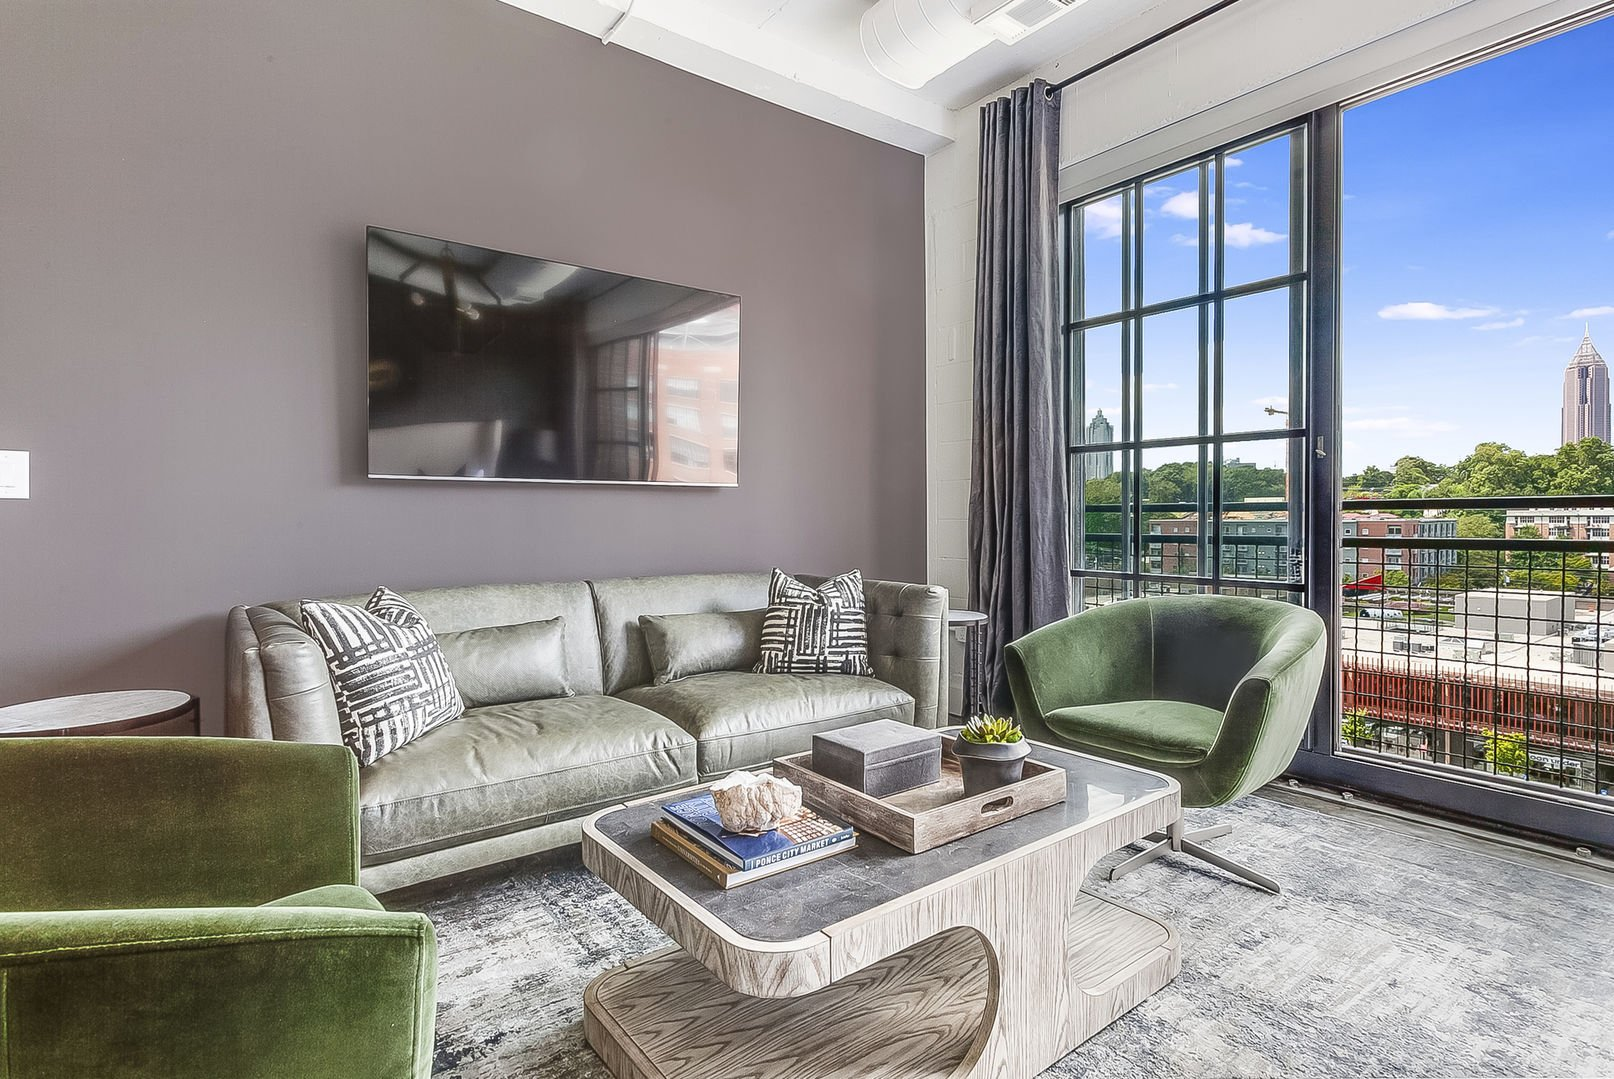 Living area of this Ponce City Flat, with a wall-mounted TV, sofa, armchairs, and coffee table in front of a large open window.